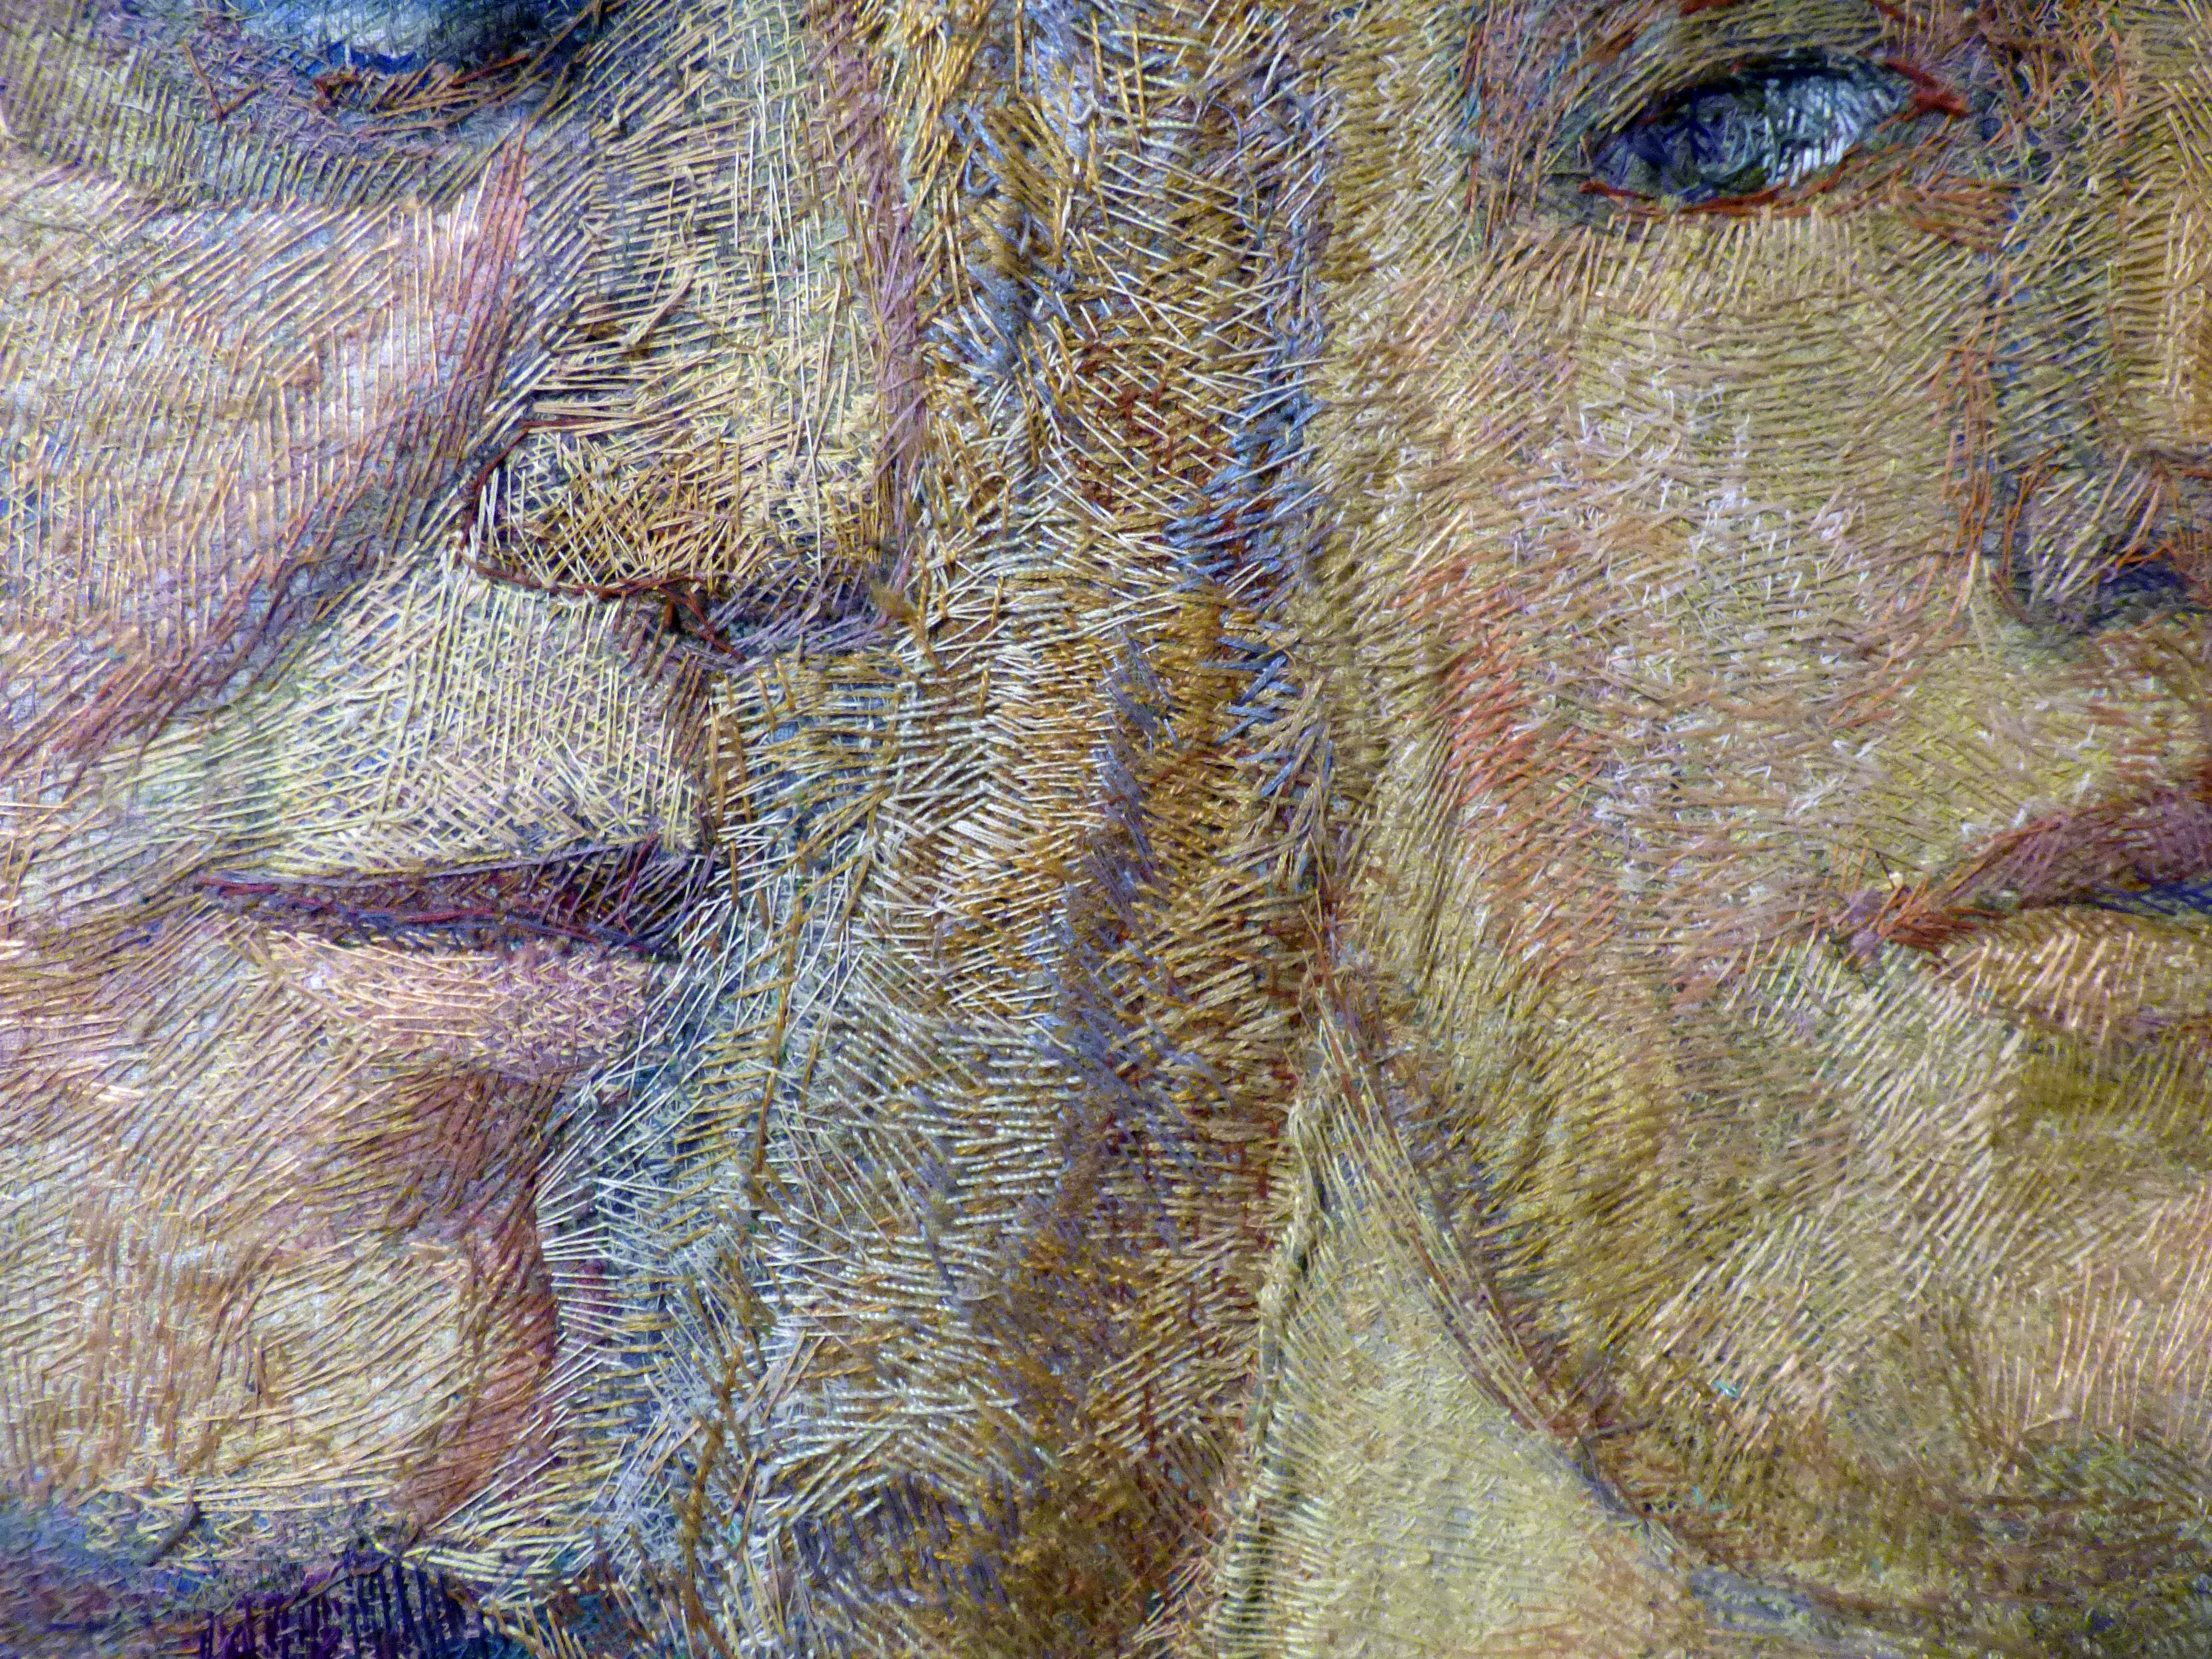 (detail) ENCOUNTER by Audrey Walker, stitched textile by Audrey Walker, 1998